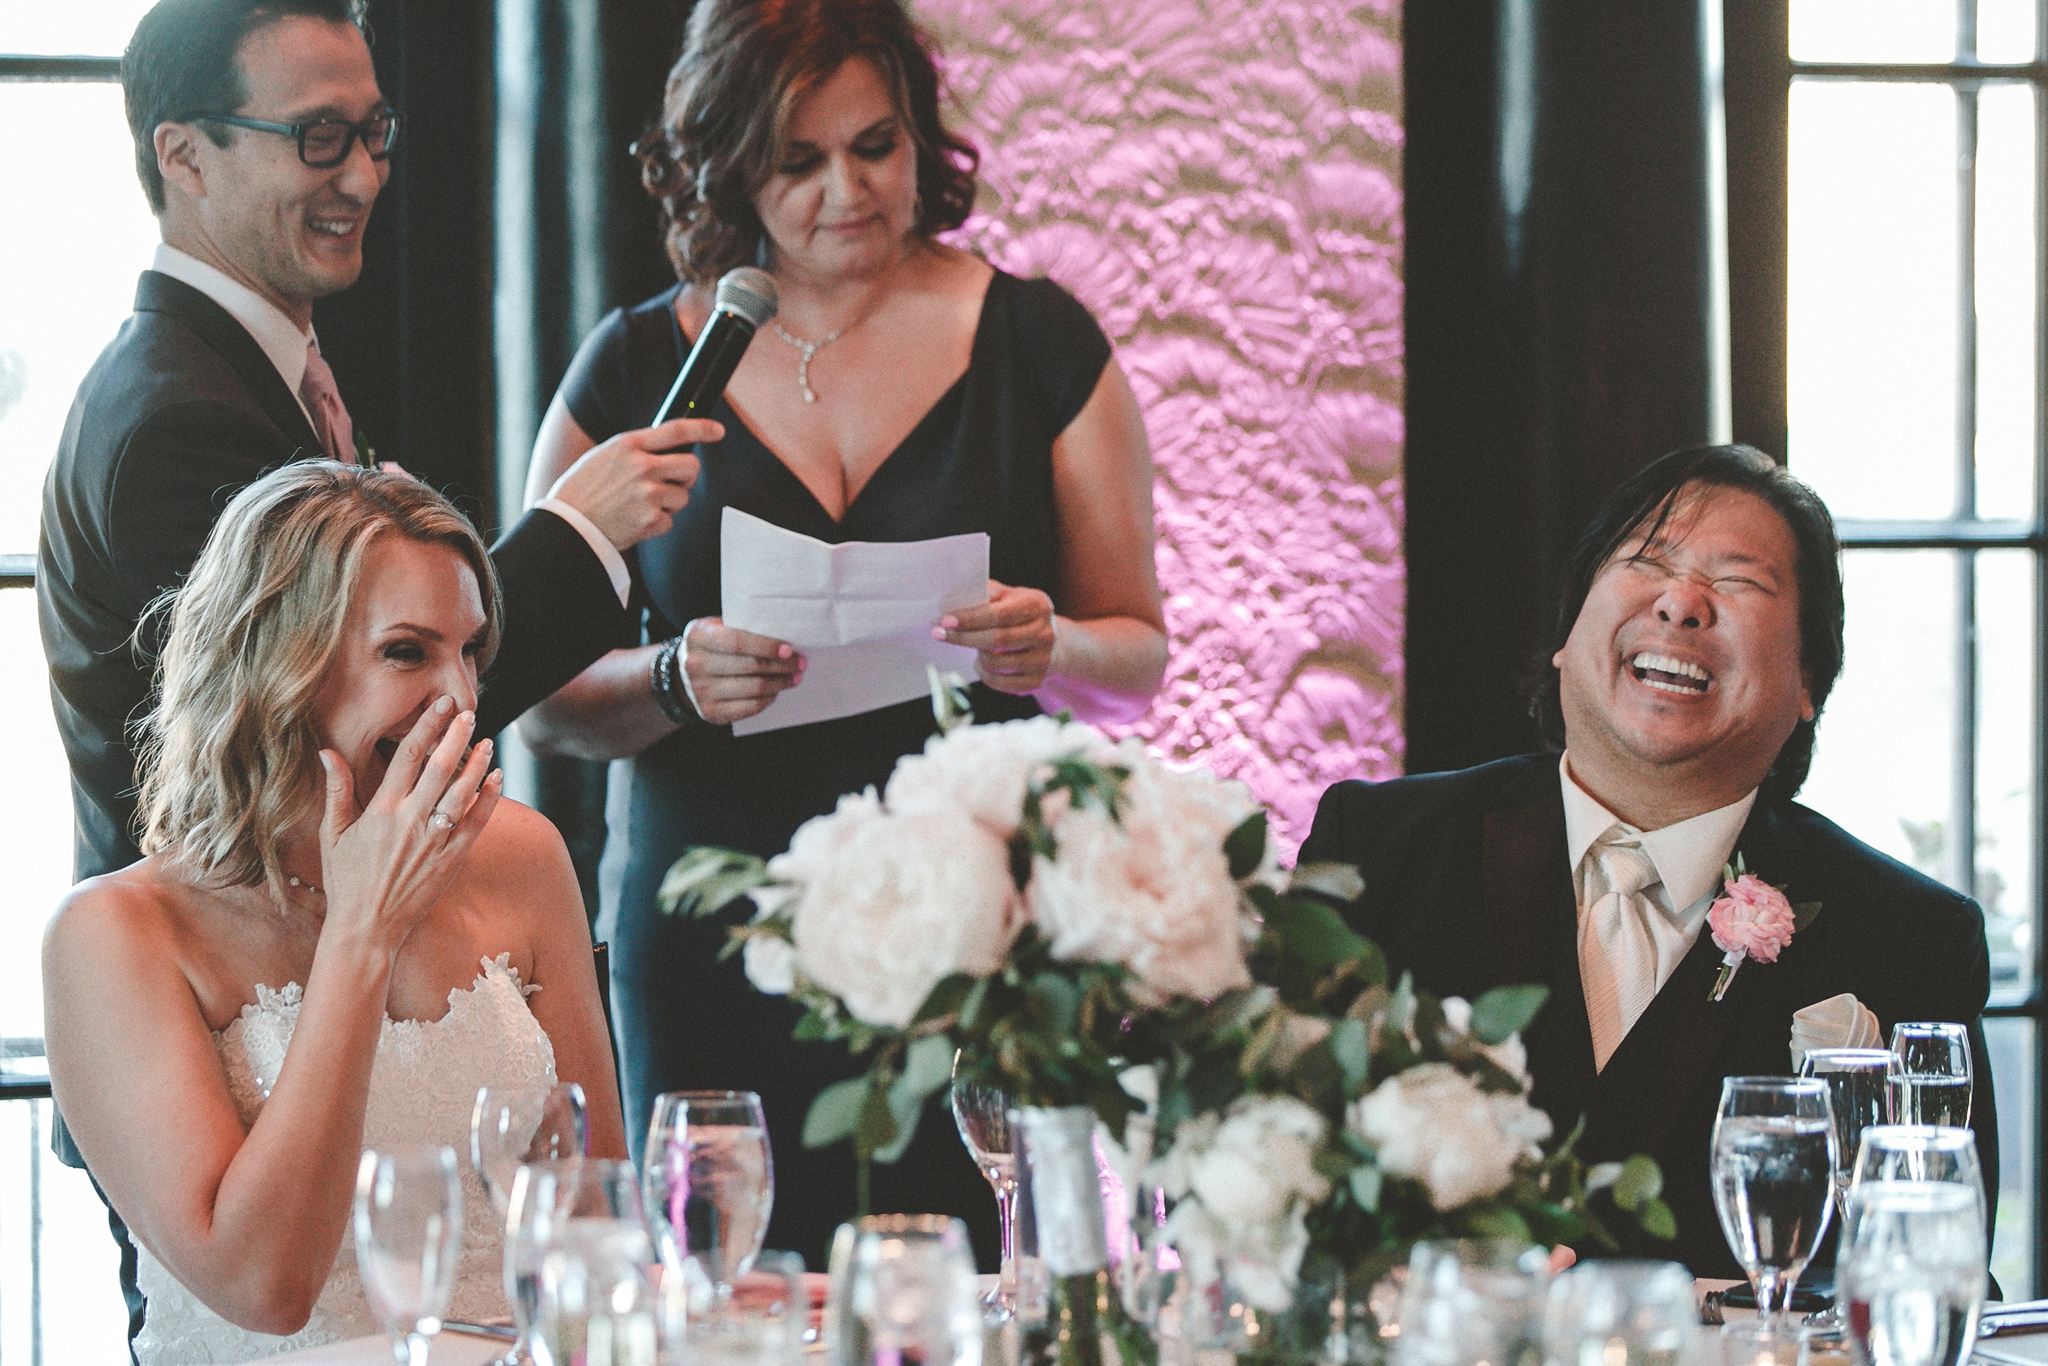 hotel_baker_st_charles_IL_wedding_photographer_0064.jpg